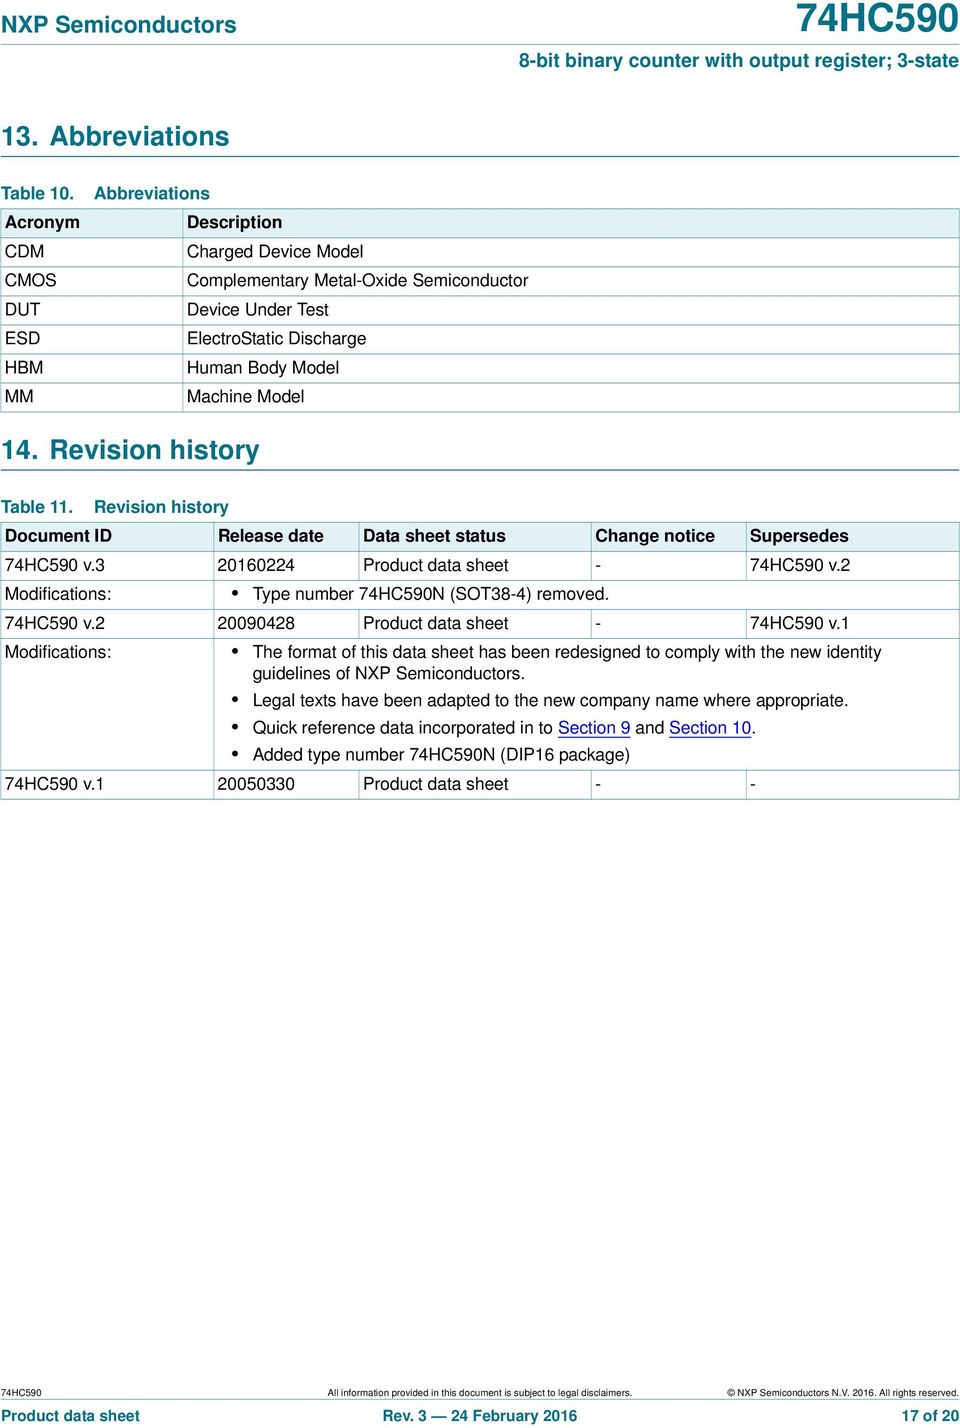 Revision history Table 11. Revision history Document ID Release date Data sheet status Change notice Supersedes v.3 20160224 Product data sheet - v.2 Modifications: Type number N (SOT38-4) removed. v.2 20090428 Product data sheet - v.